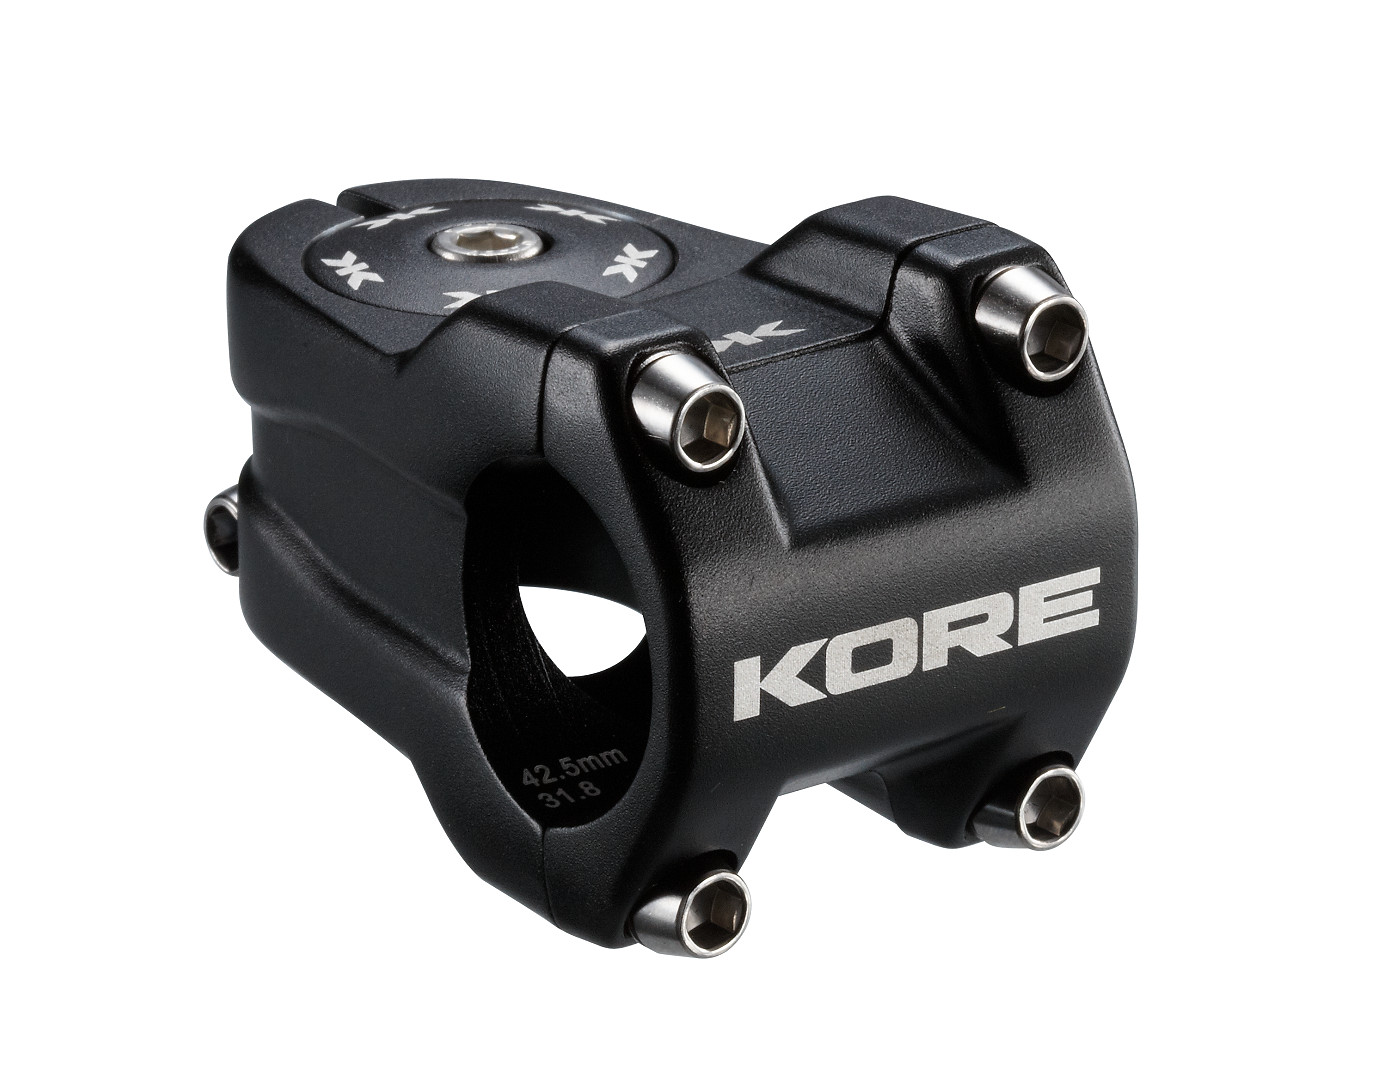 Kore Rivera Stem Stem - Rivera Blk